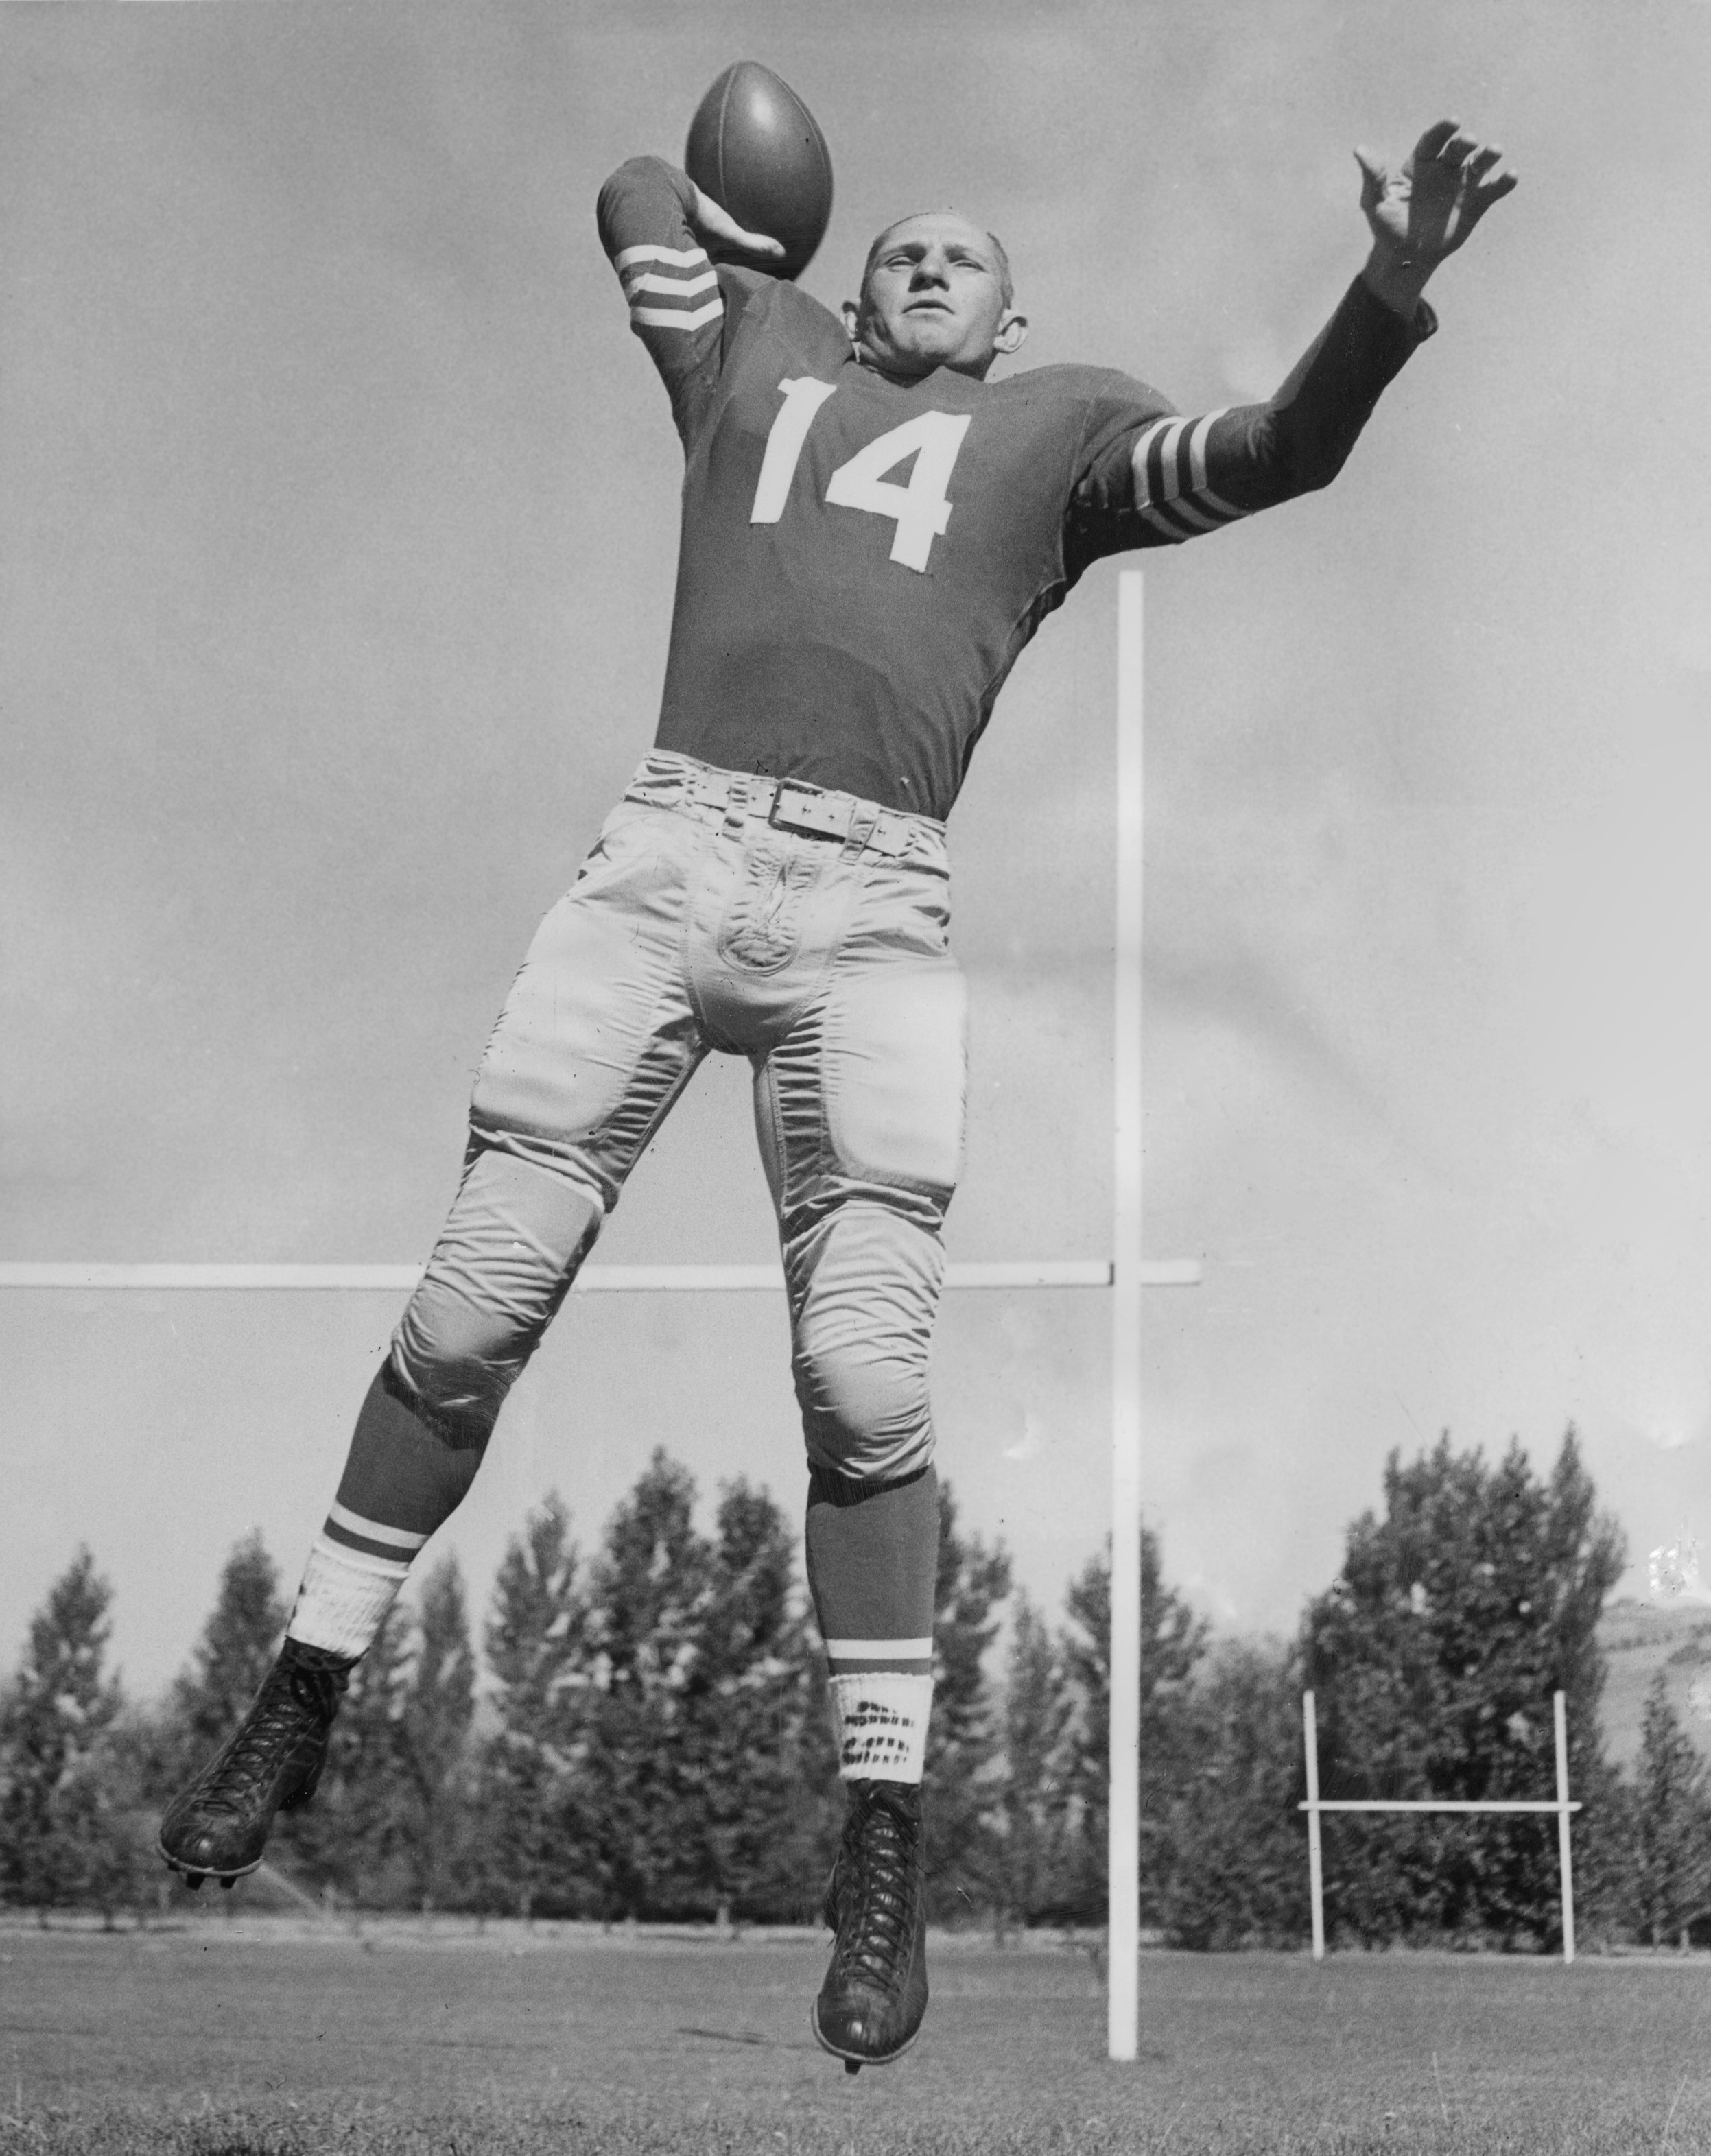 YA Tittle, Hall of Fame quarterback and Giants legend, dead at 90